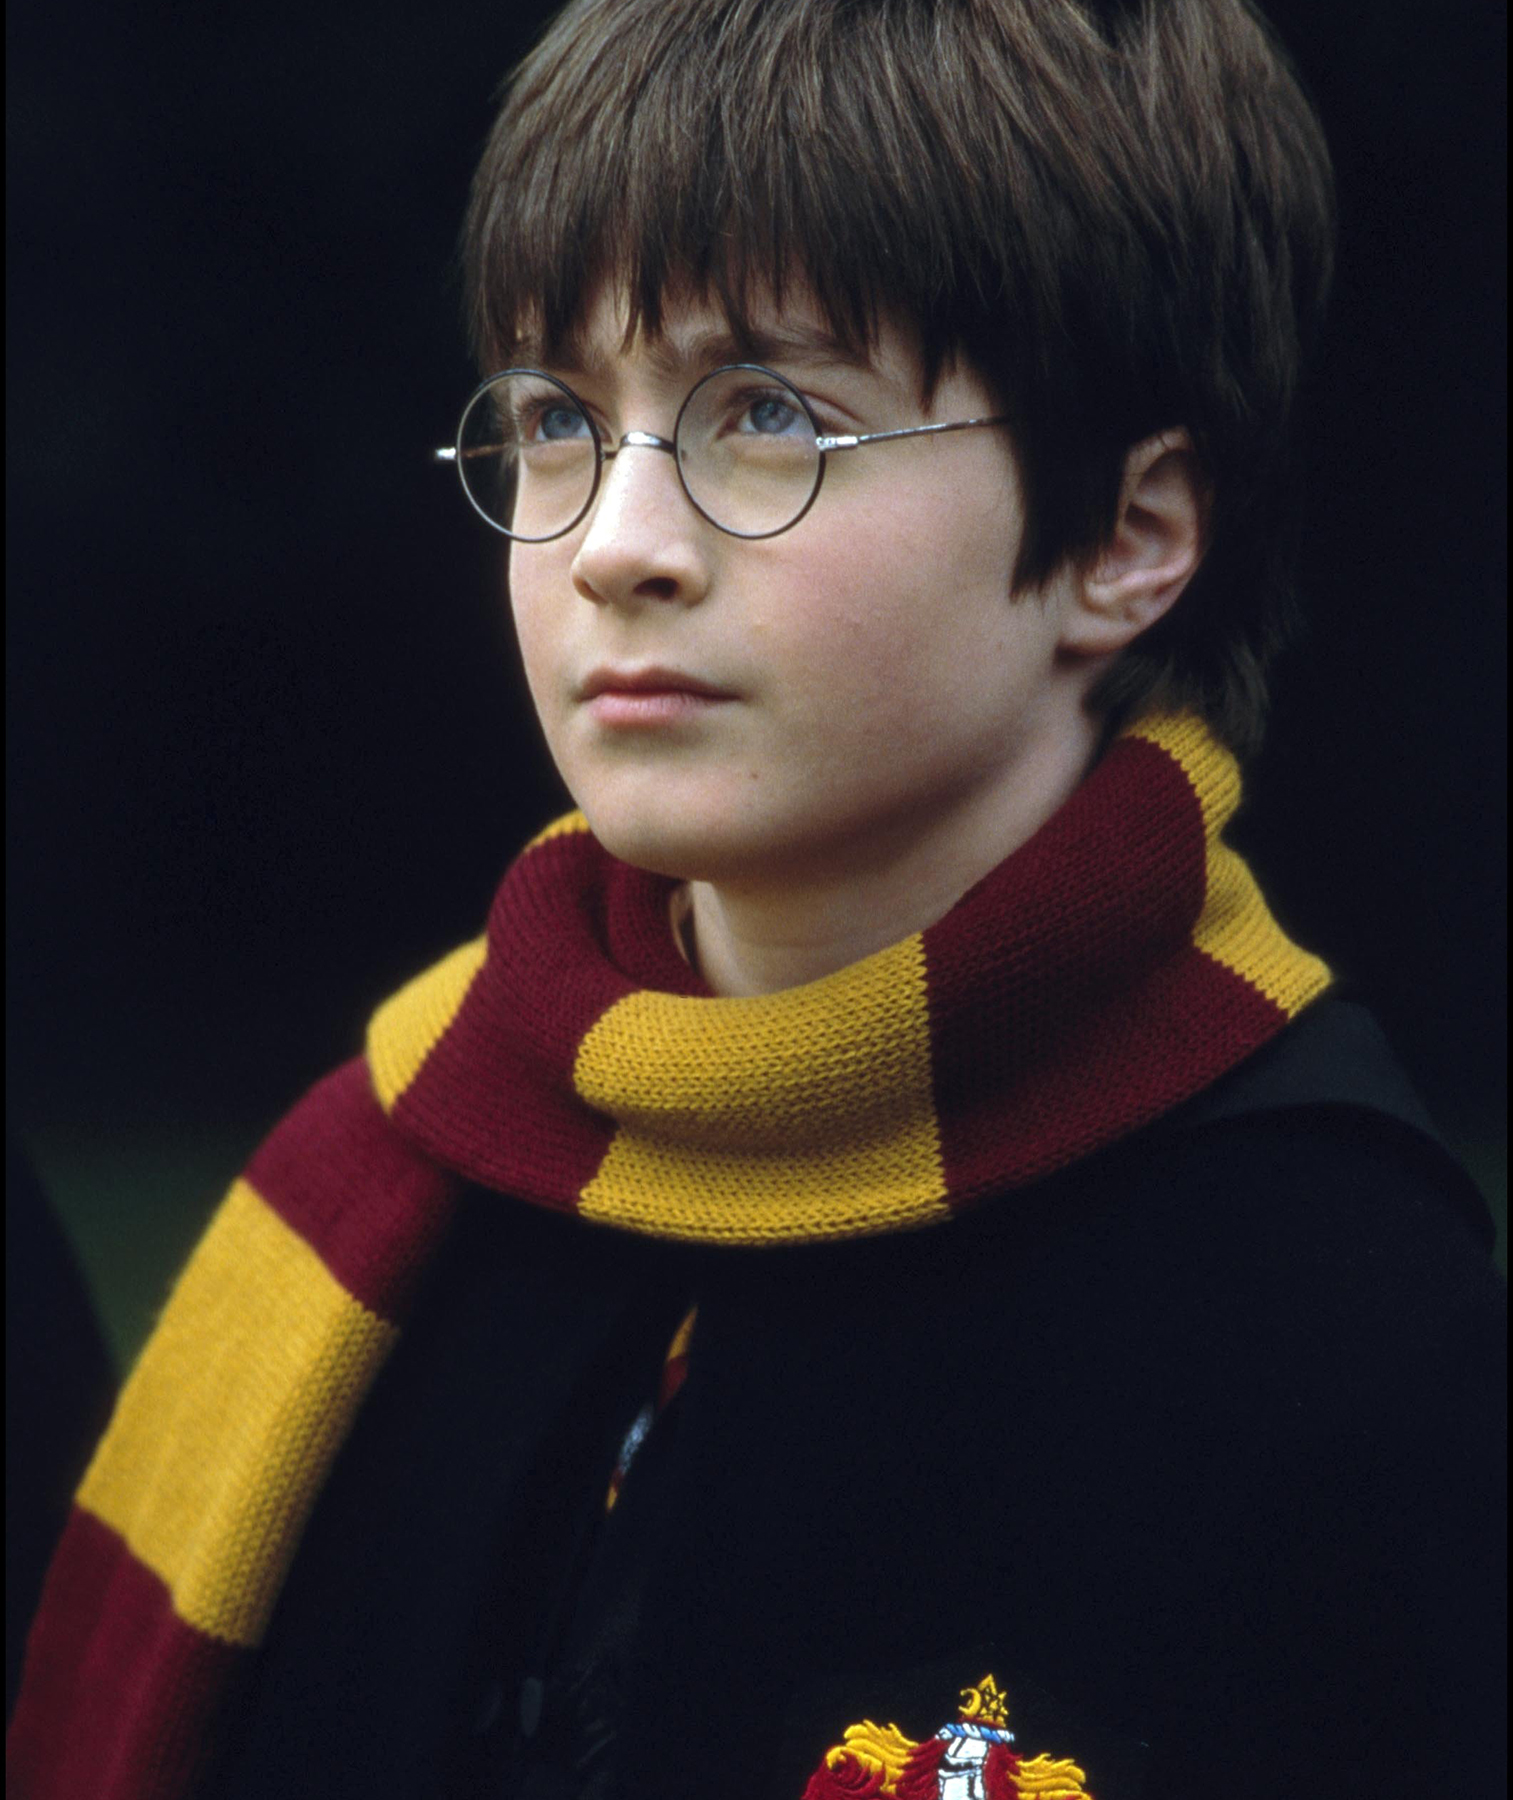 Harry Potter in a scarf